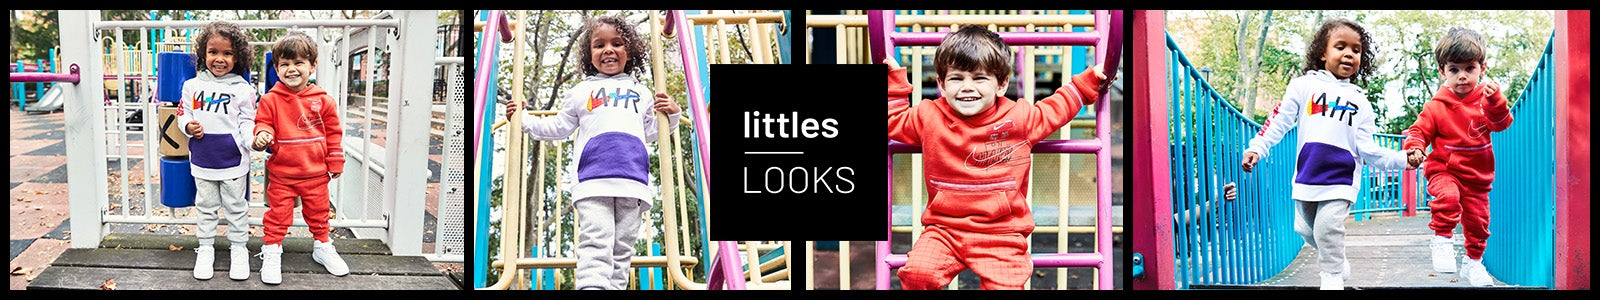 Littles by Kids Footlocker. Your go-to source for durable and cute pieces from brands you know and love, for their first car ride home to their first day of preschool.